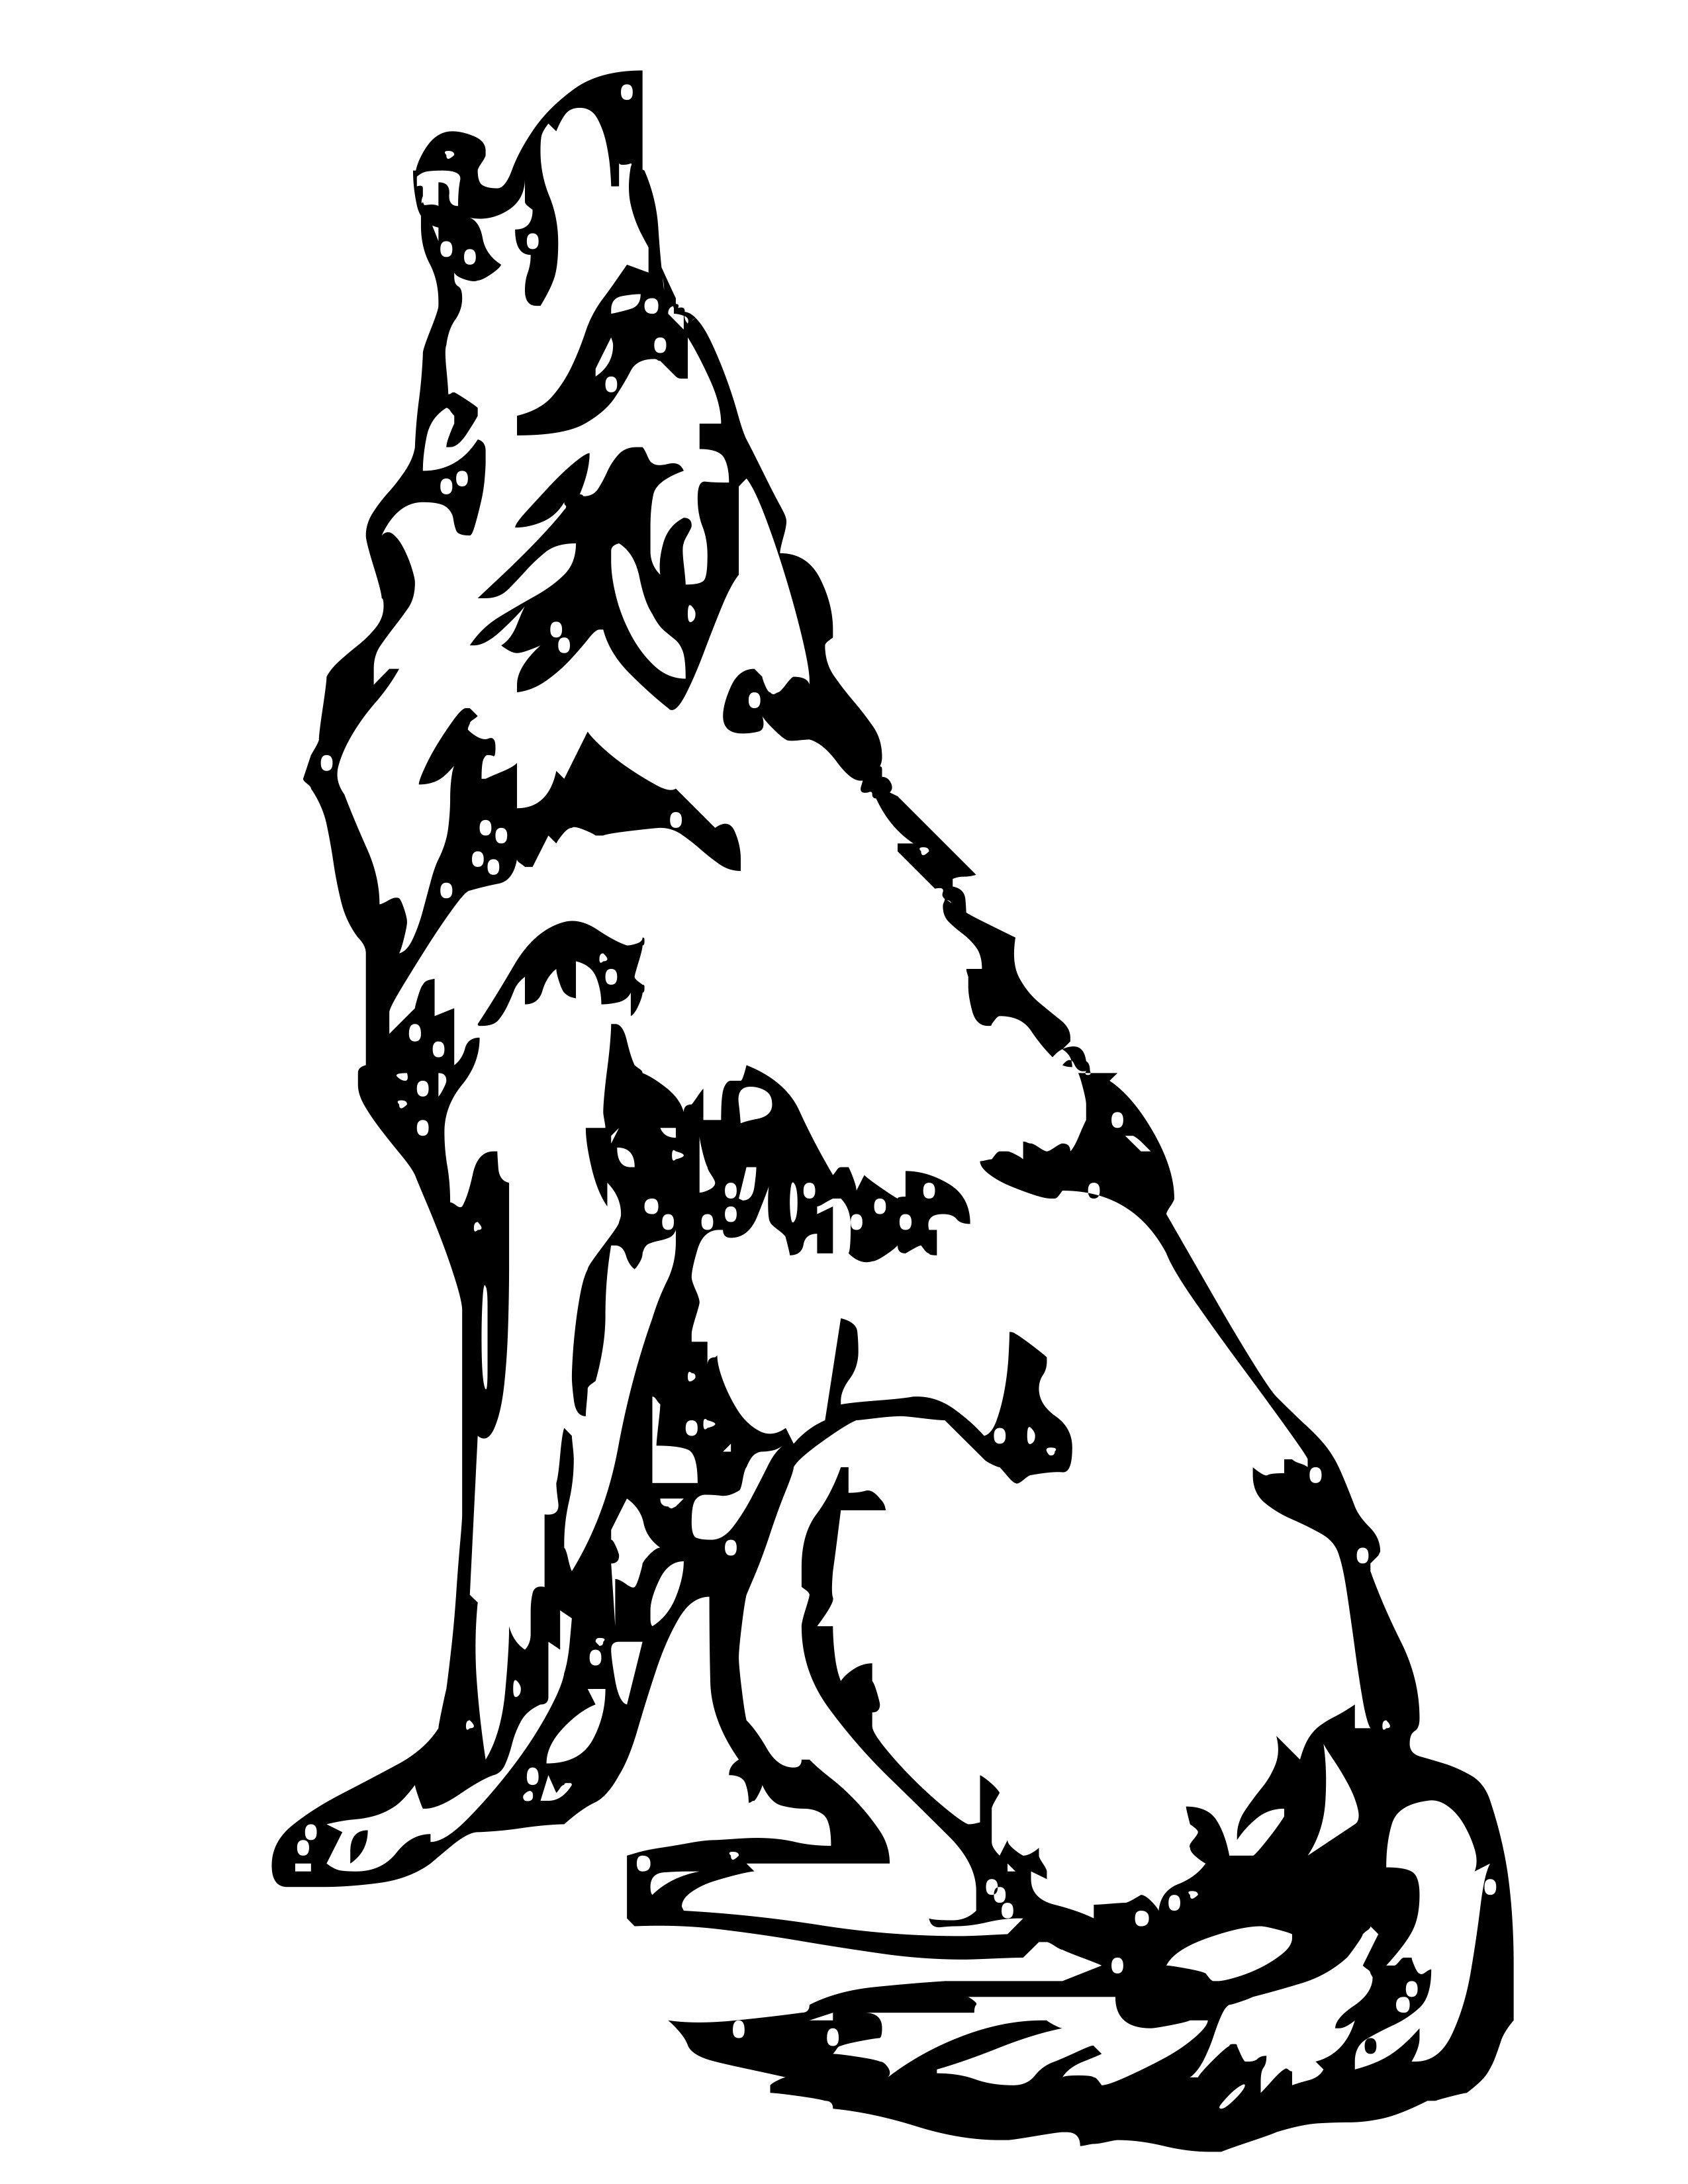 coloring picture of a wolf wolf coloring pages download and print wolf coloring pages picture coloring wolf of a